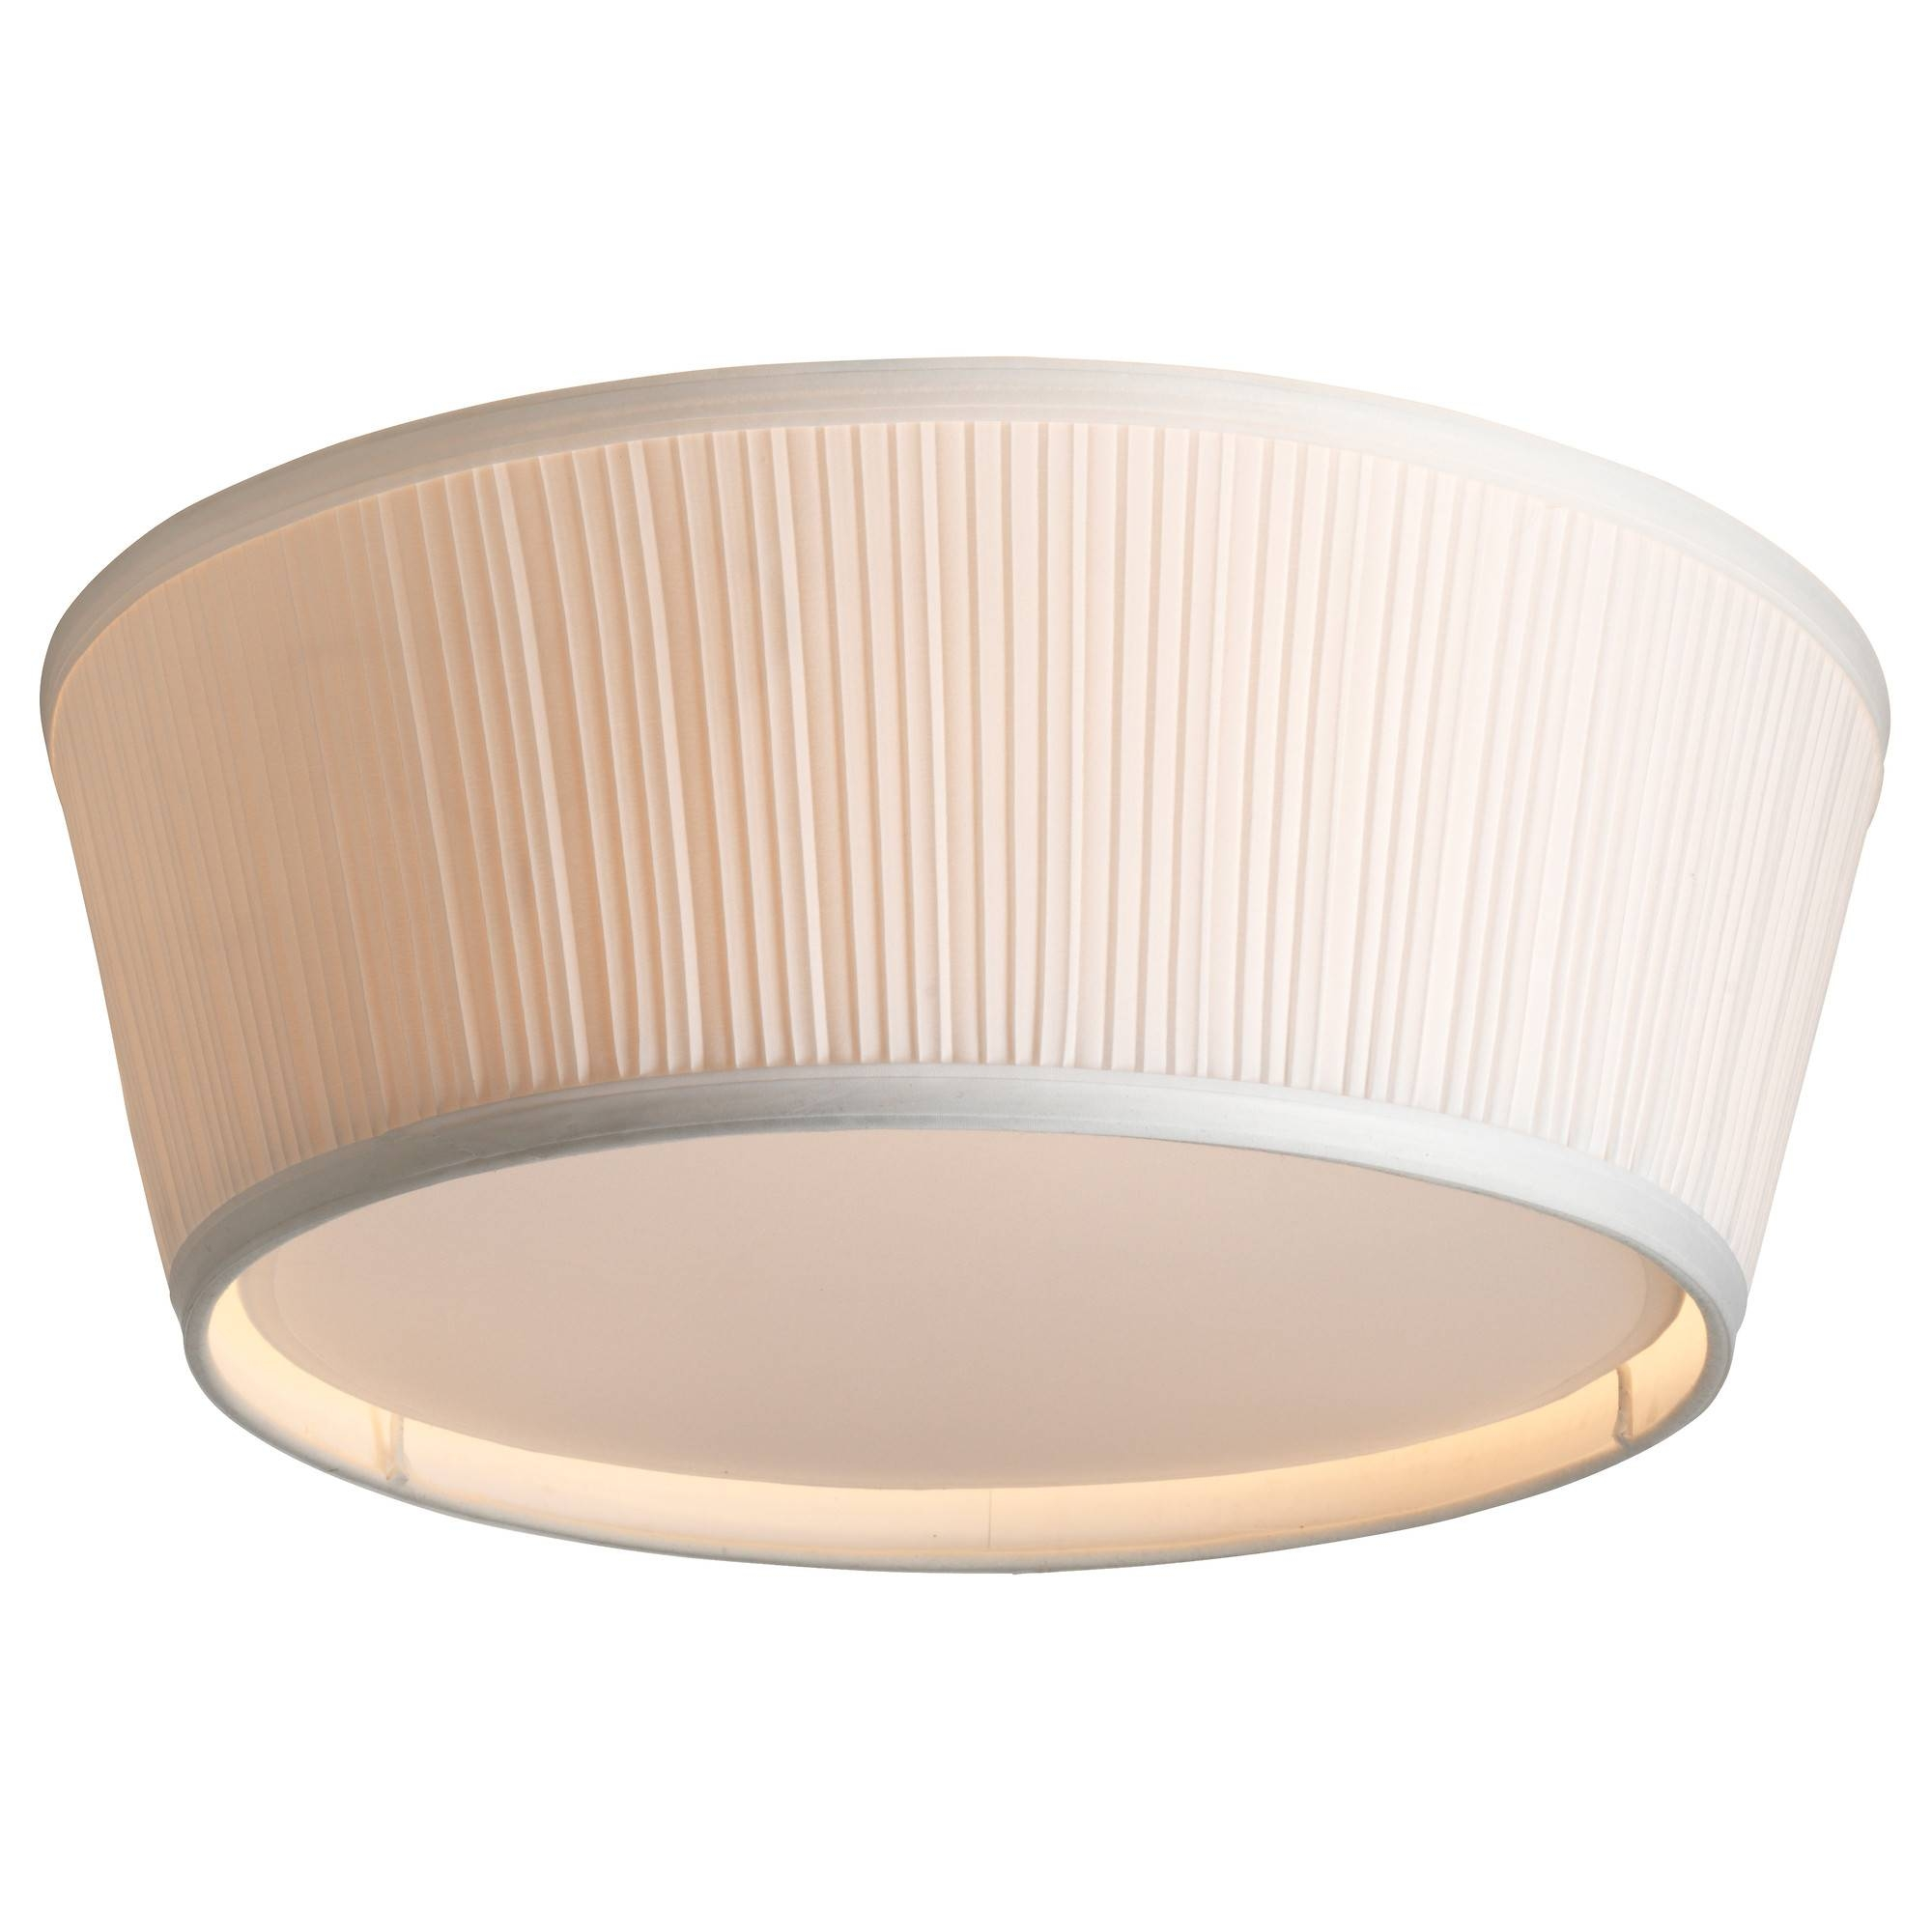 Årstid Ceiling Lamp White 46 Cm - Ikea throughout Ikea Ceiling Lights Fittings (Image 1 of 15)